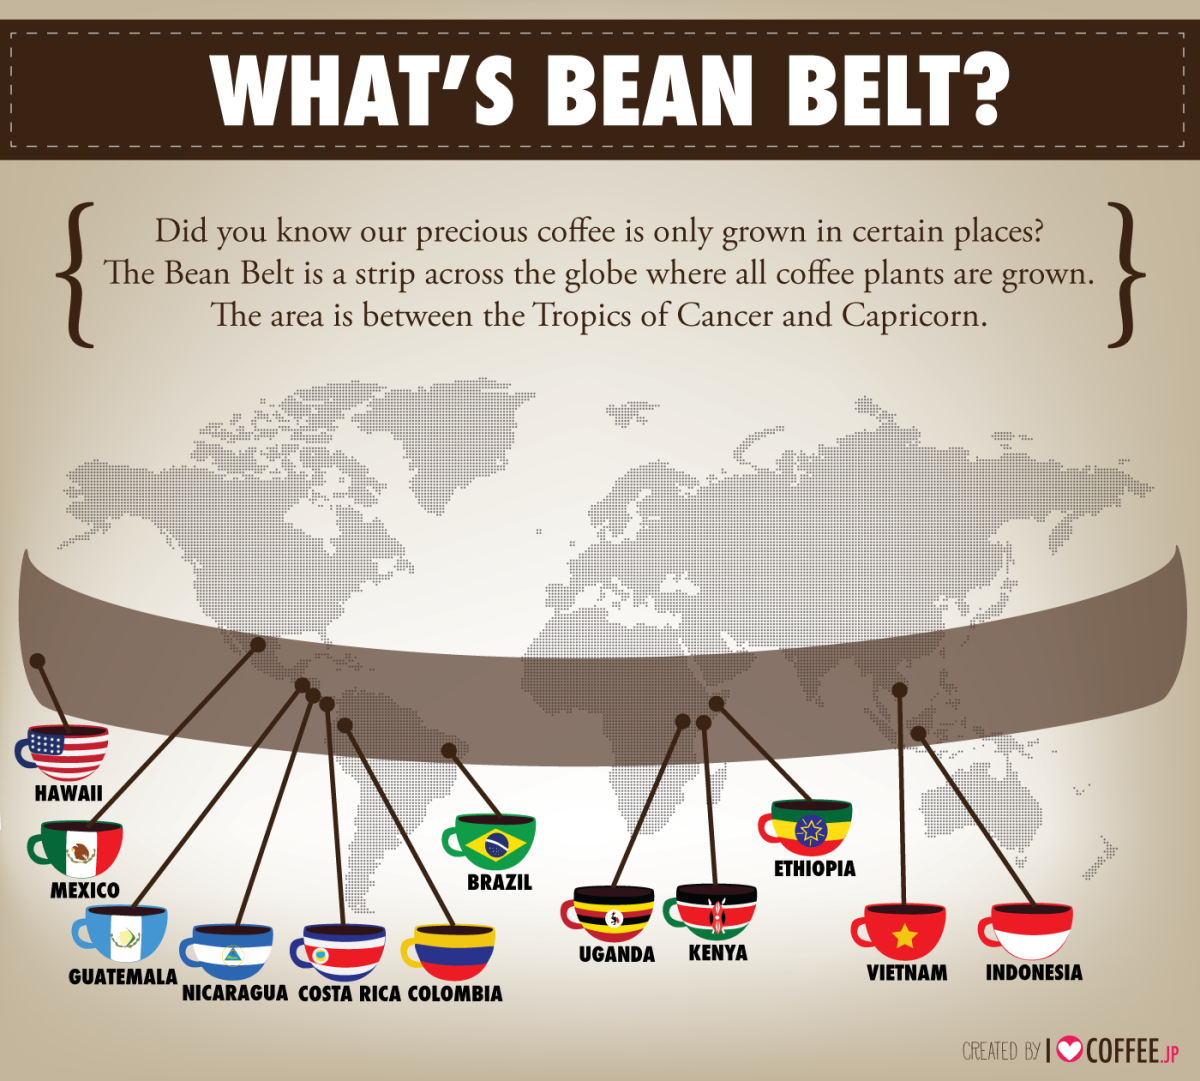 Where does coffee grow? The Bean Belt.